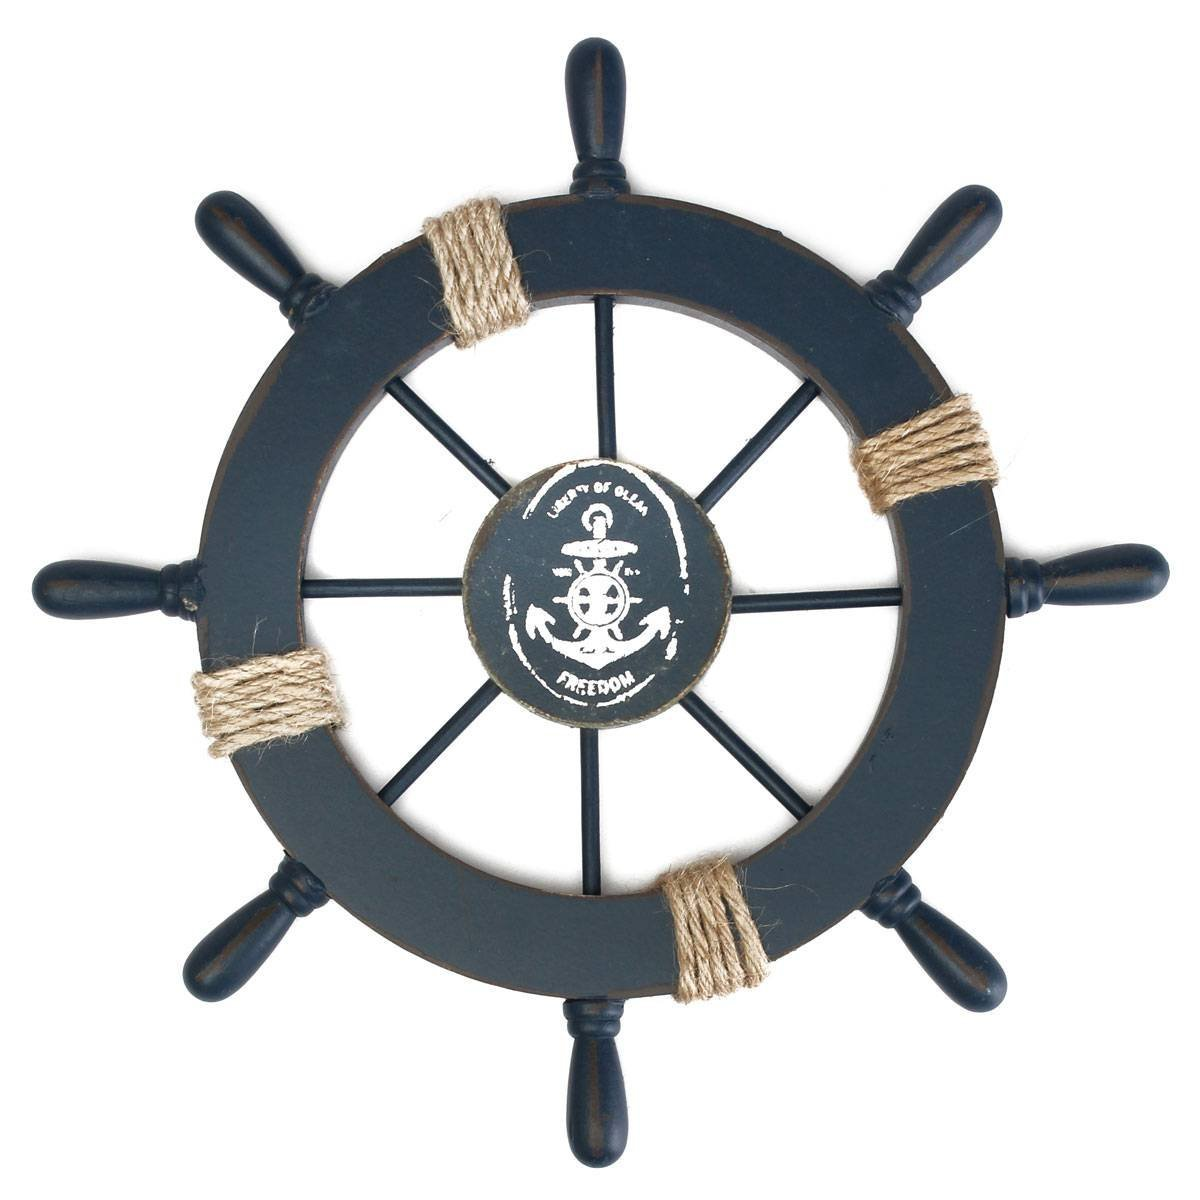 Punctual Nautical Wooden Ship Wheel Boat Steering Handcrafted Wall Decor Maritime Wheels Maritime